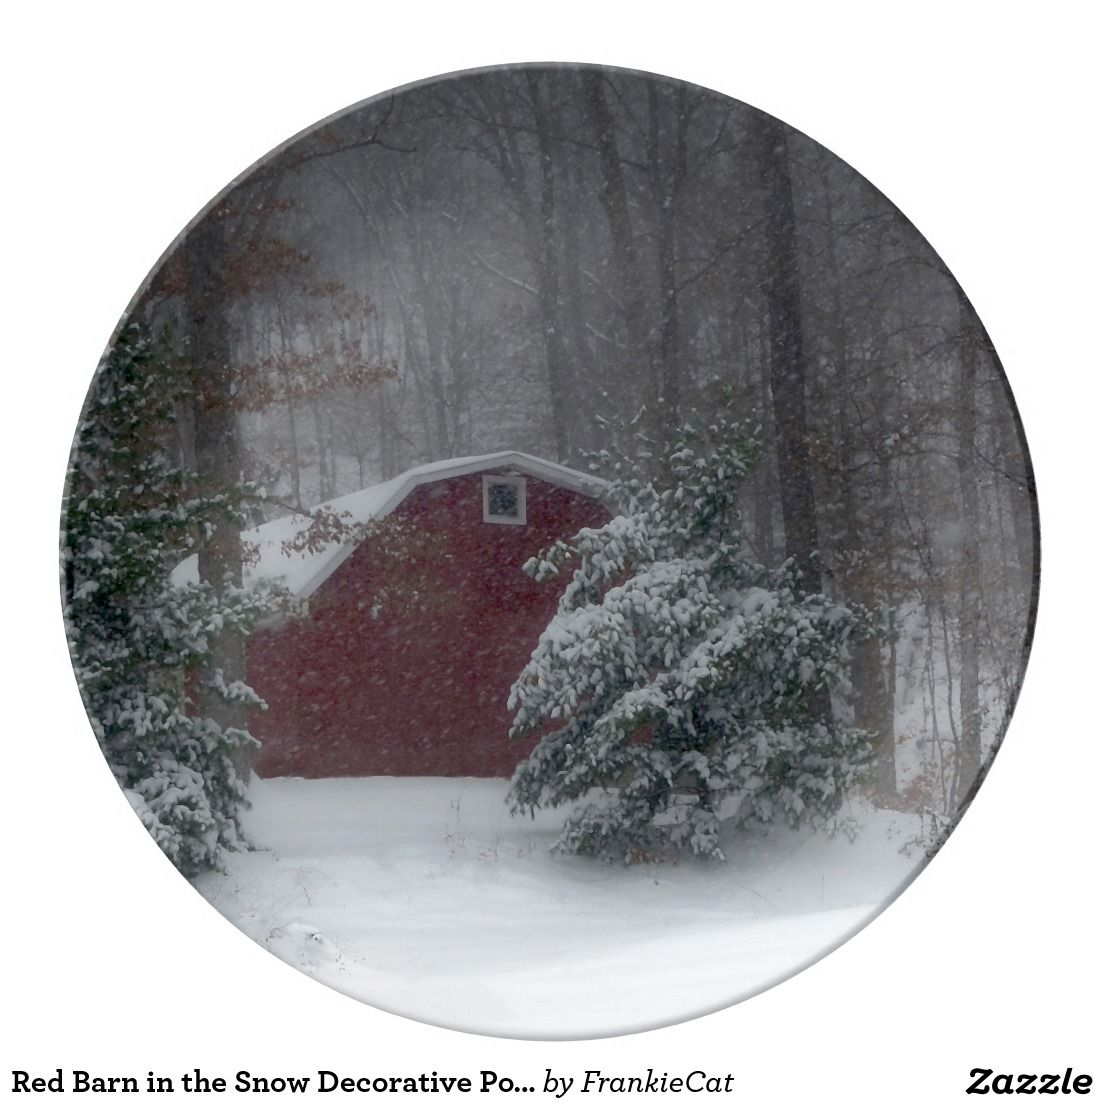 Red Barn in the Snow Decorative Porcelain Plate